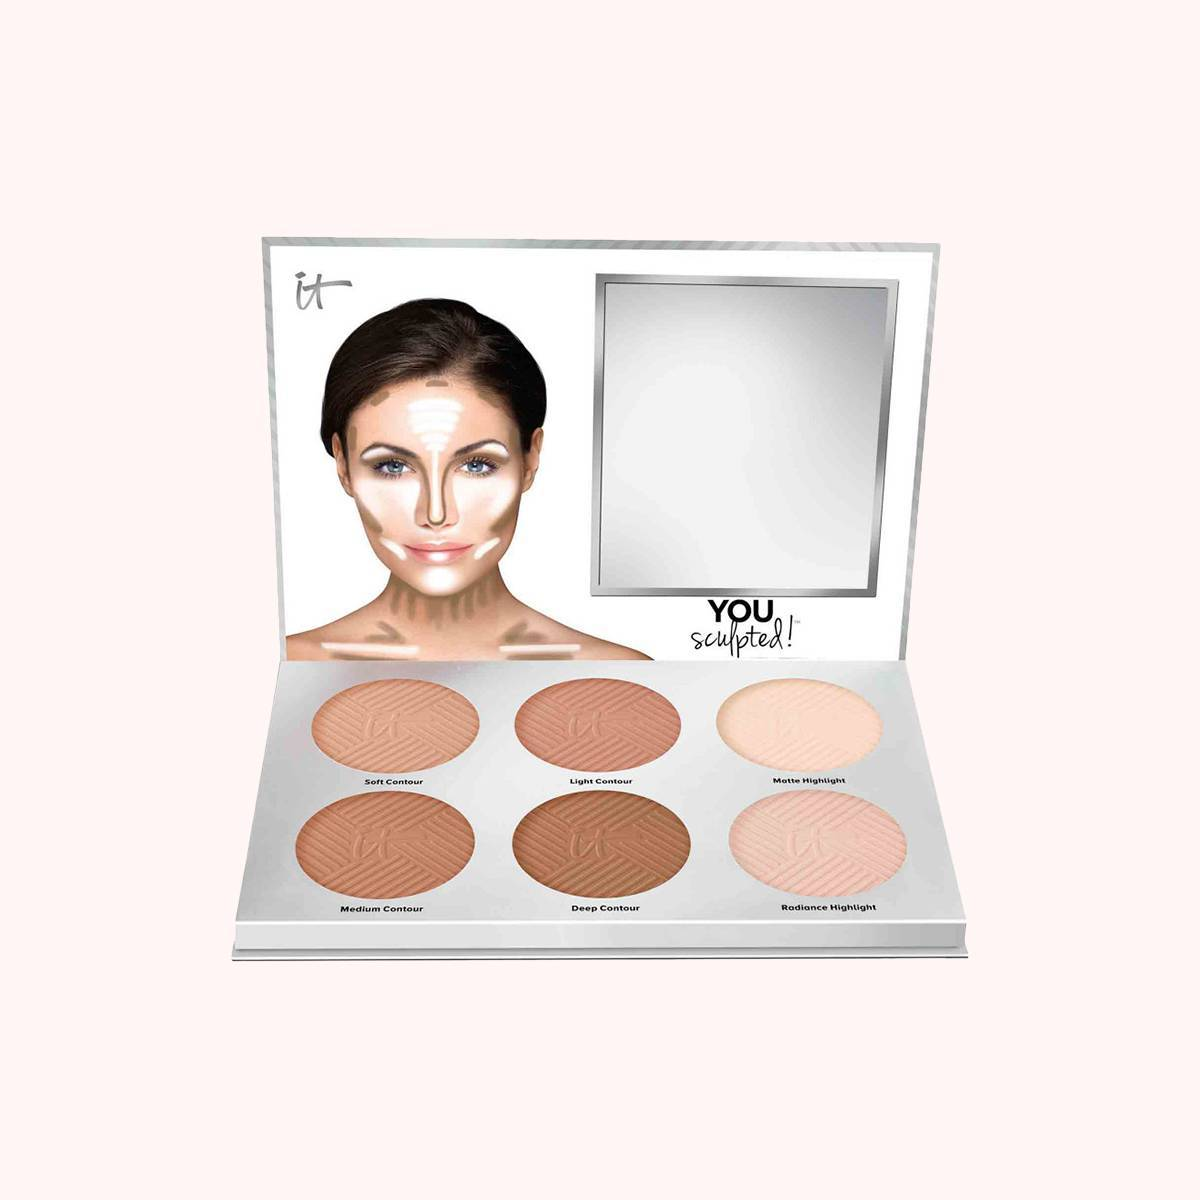 it-cosmetics-contour-kits-with-instructions